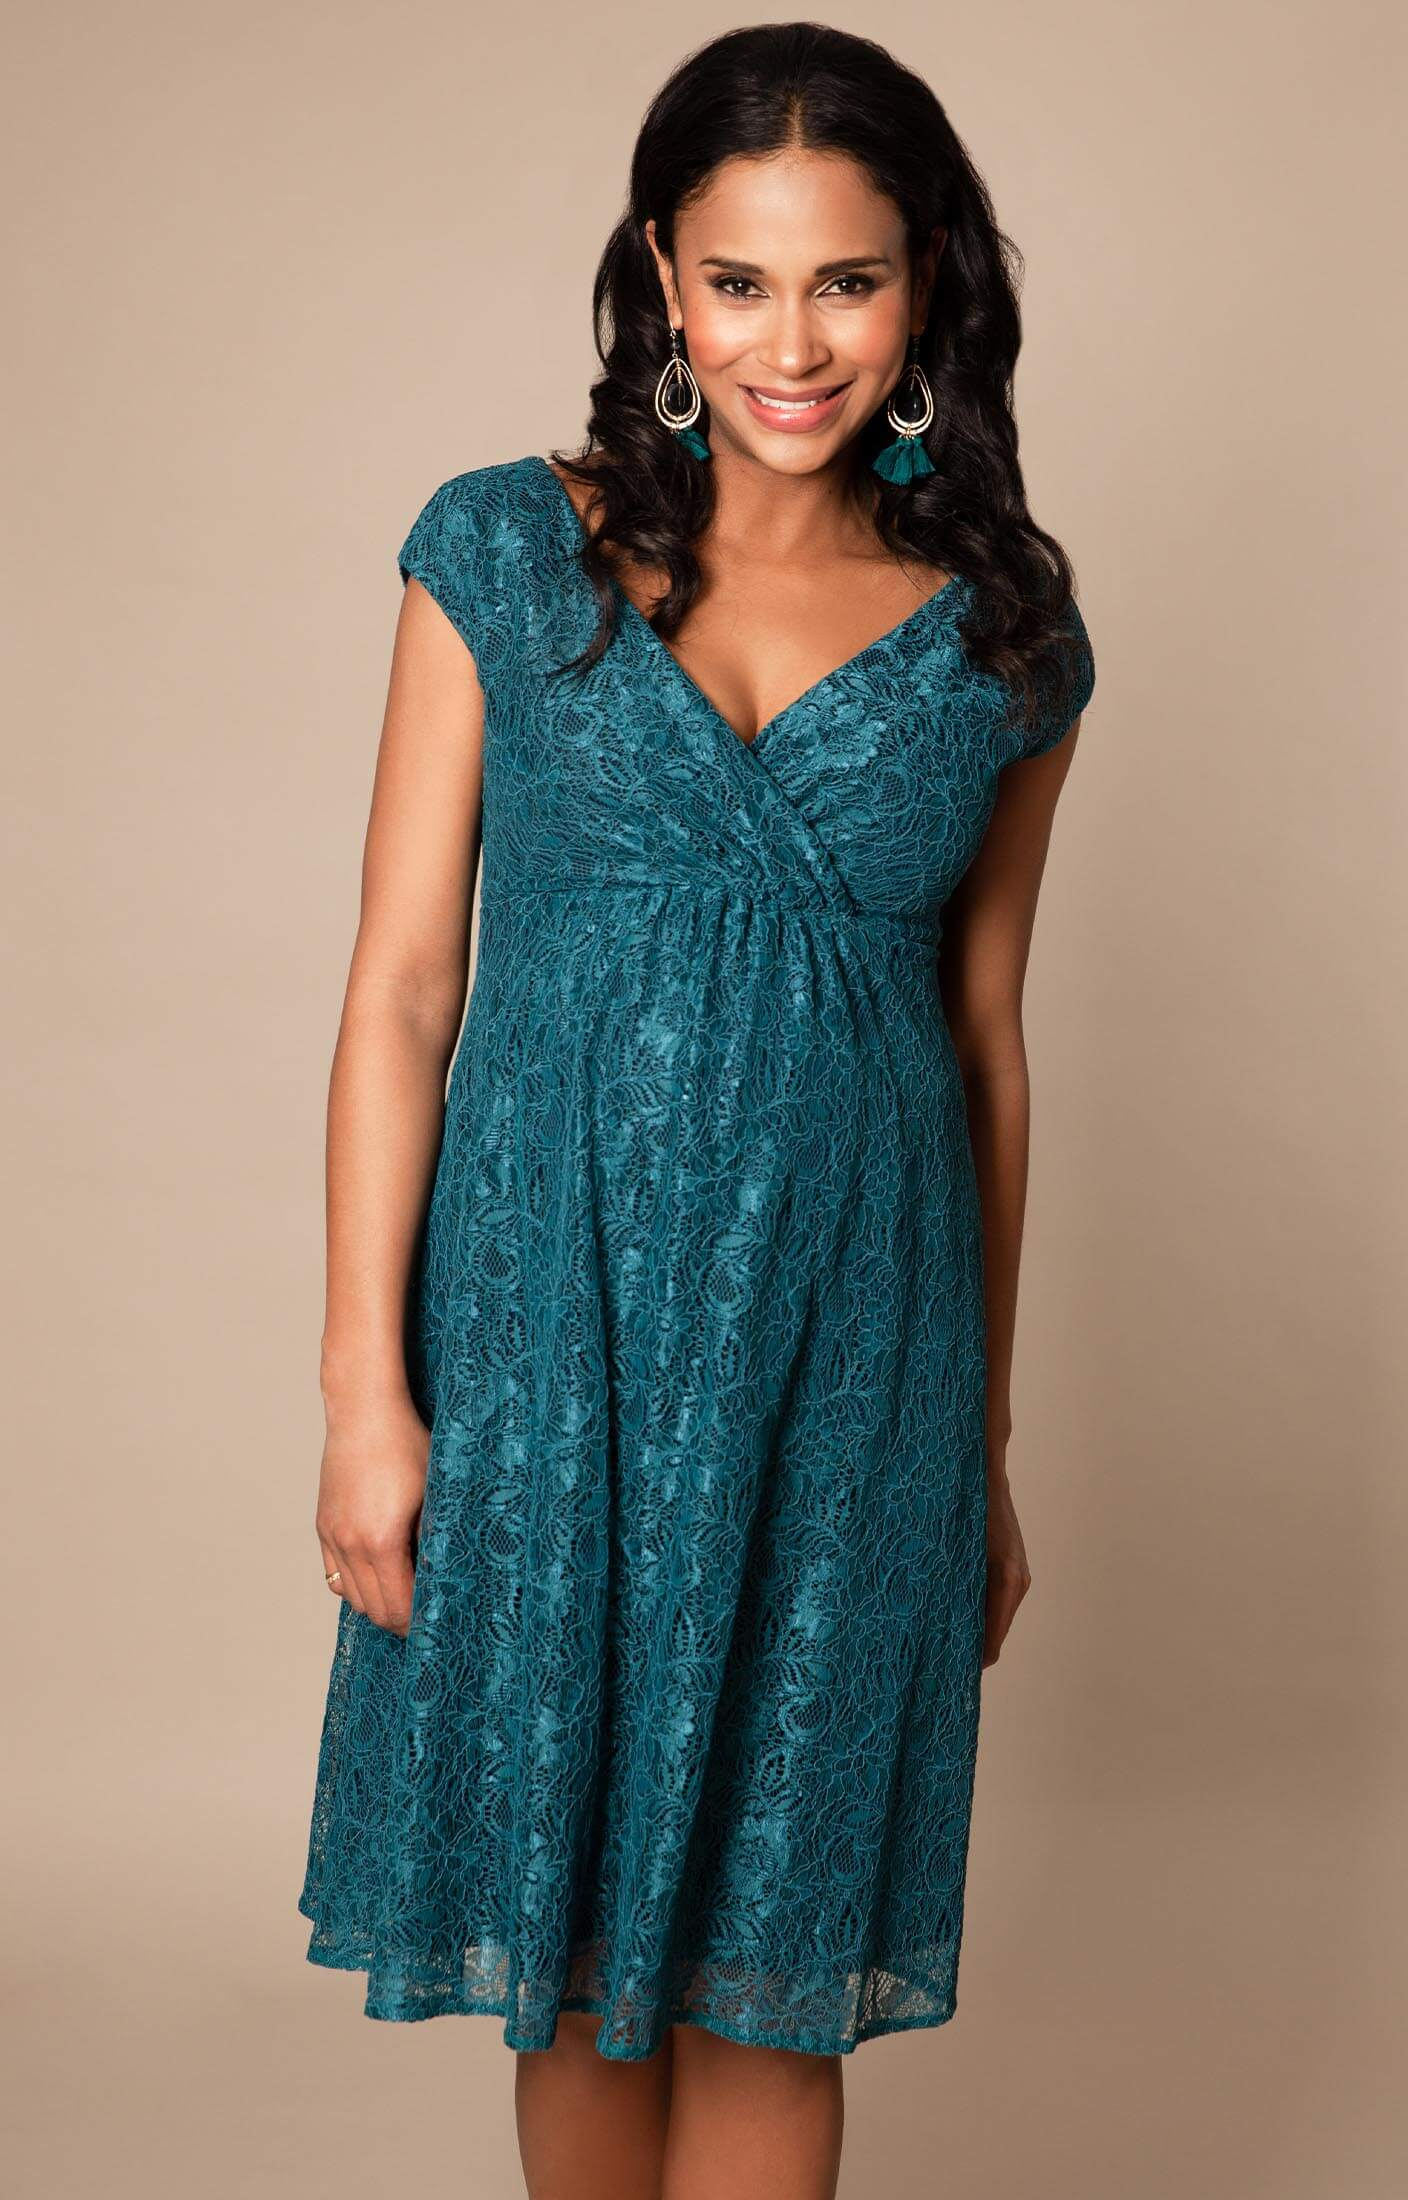 Nicola Maternity Lace Dress Short Ocean Green Maternity Wedding Dresses Evening Wear And Party Clothes By Tiffany Rose Us